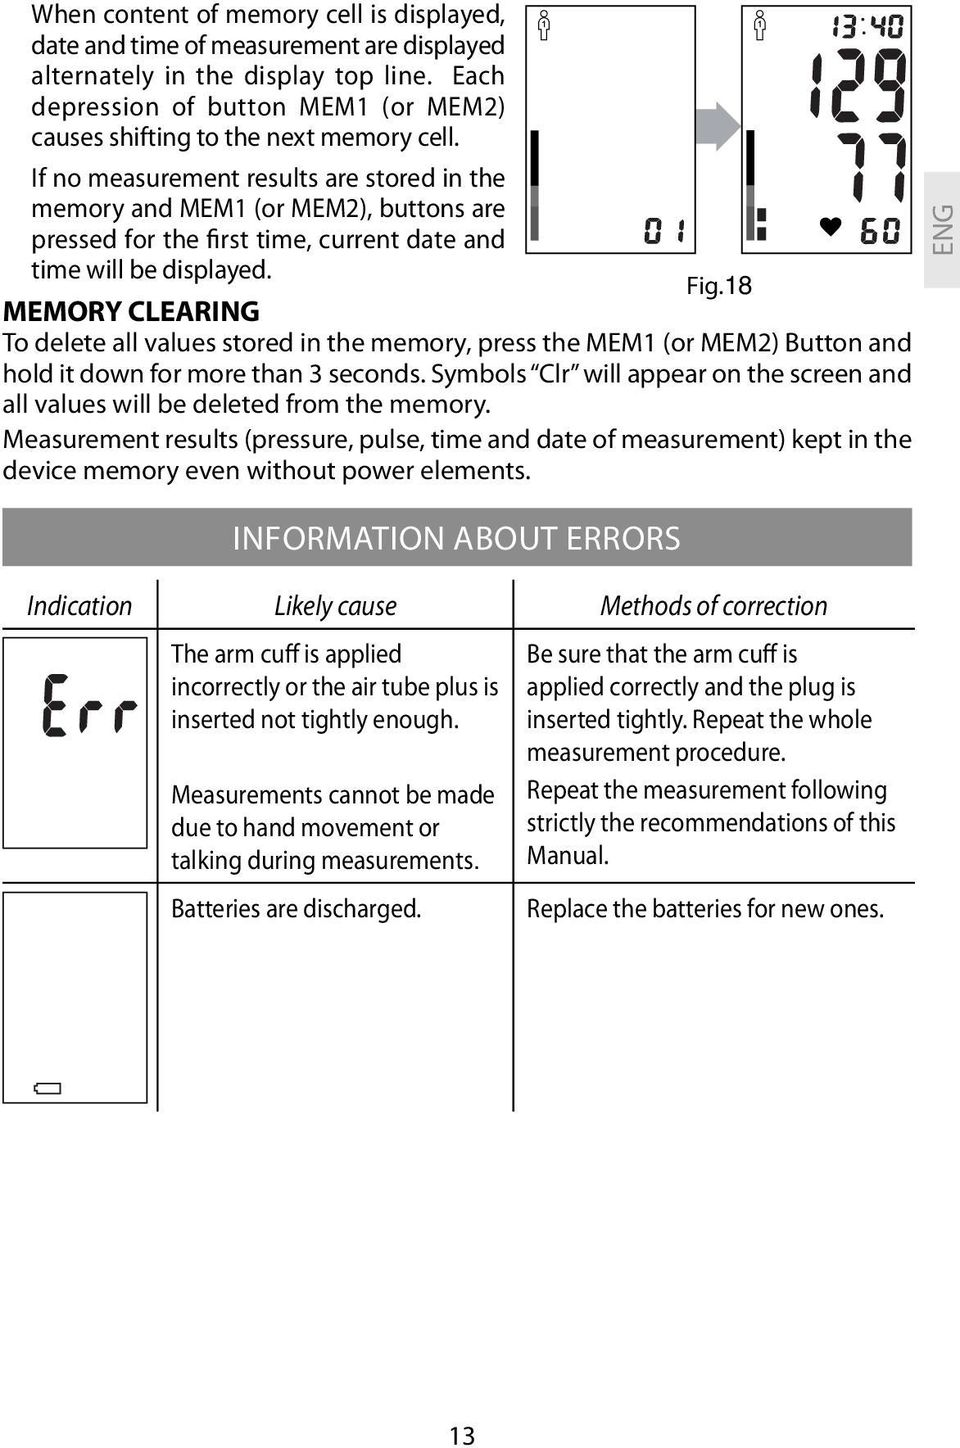 If no measurement results are stored in the memory and МEM1 (or МEM2), buttons are pressed for the first time, current date and time will be displayed. Fig.